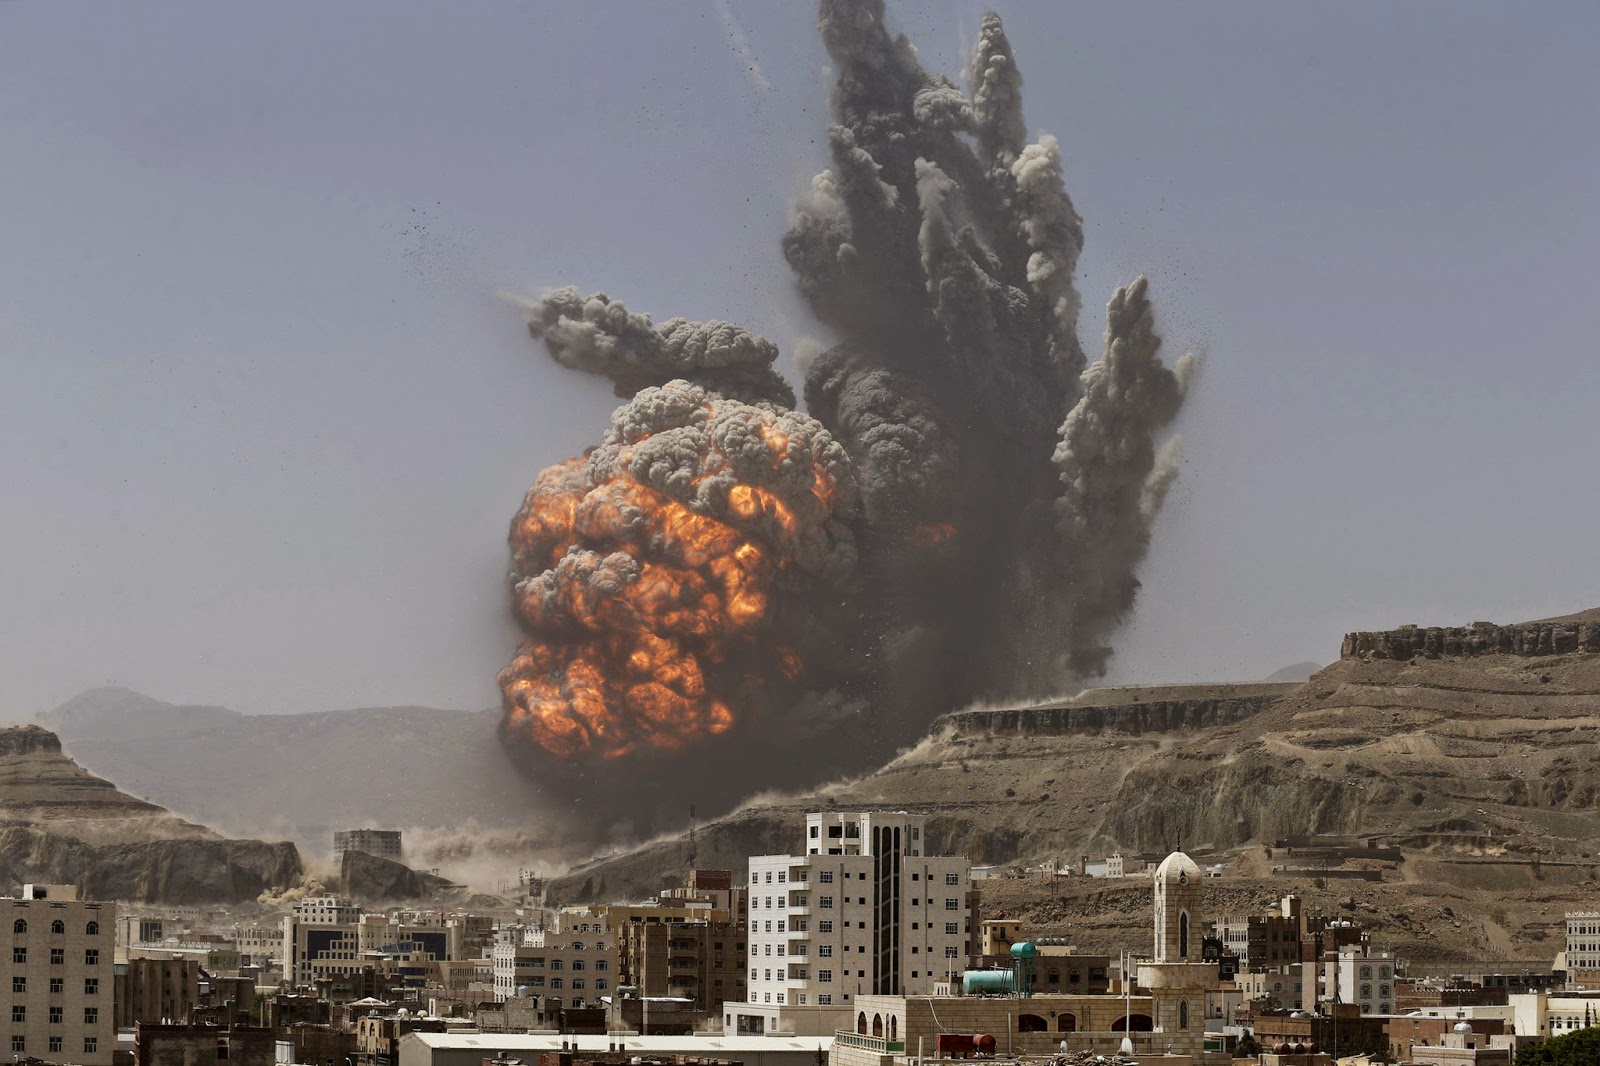 0ddc070ad6 An air strike on a Scud missile base in the Houthi-controlled Yemeni  capital Sanaa triggered a big explosion that killed 25 people and wounded  almost 400 on ...